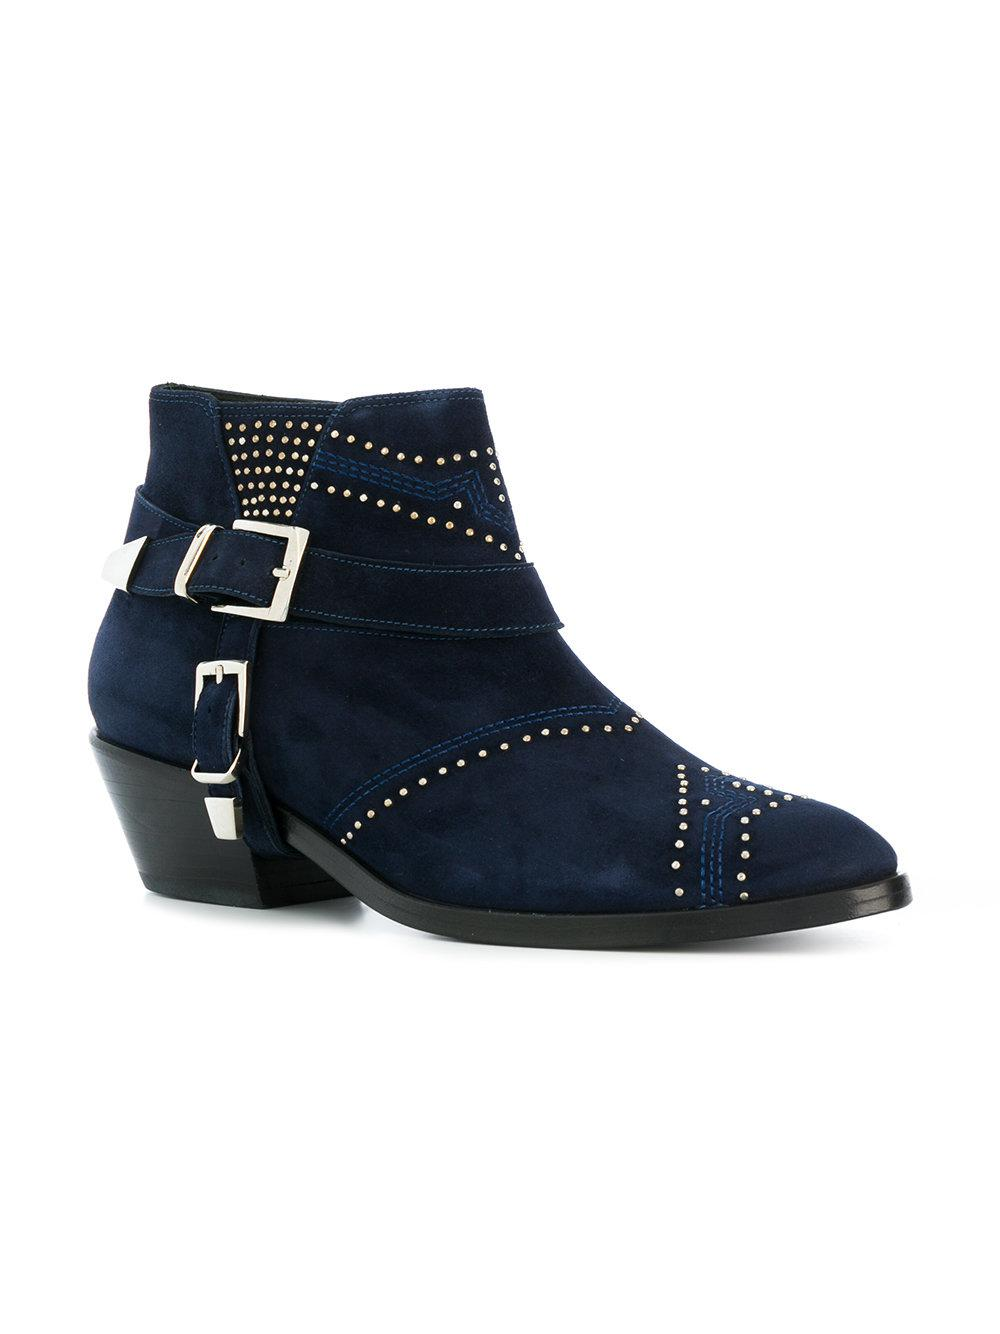 Anine Bing Suede Bianca Cowboy Boots in Blue